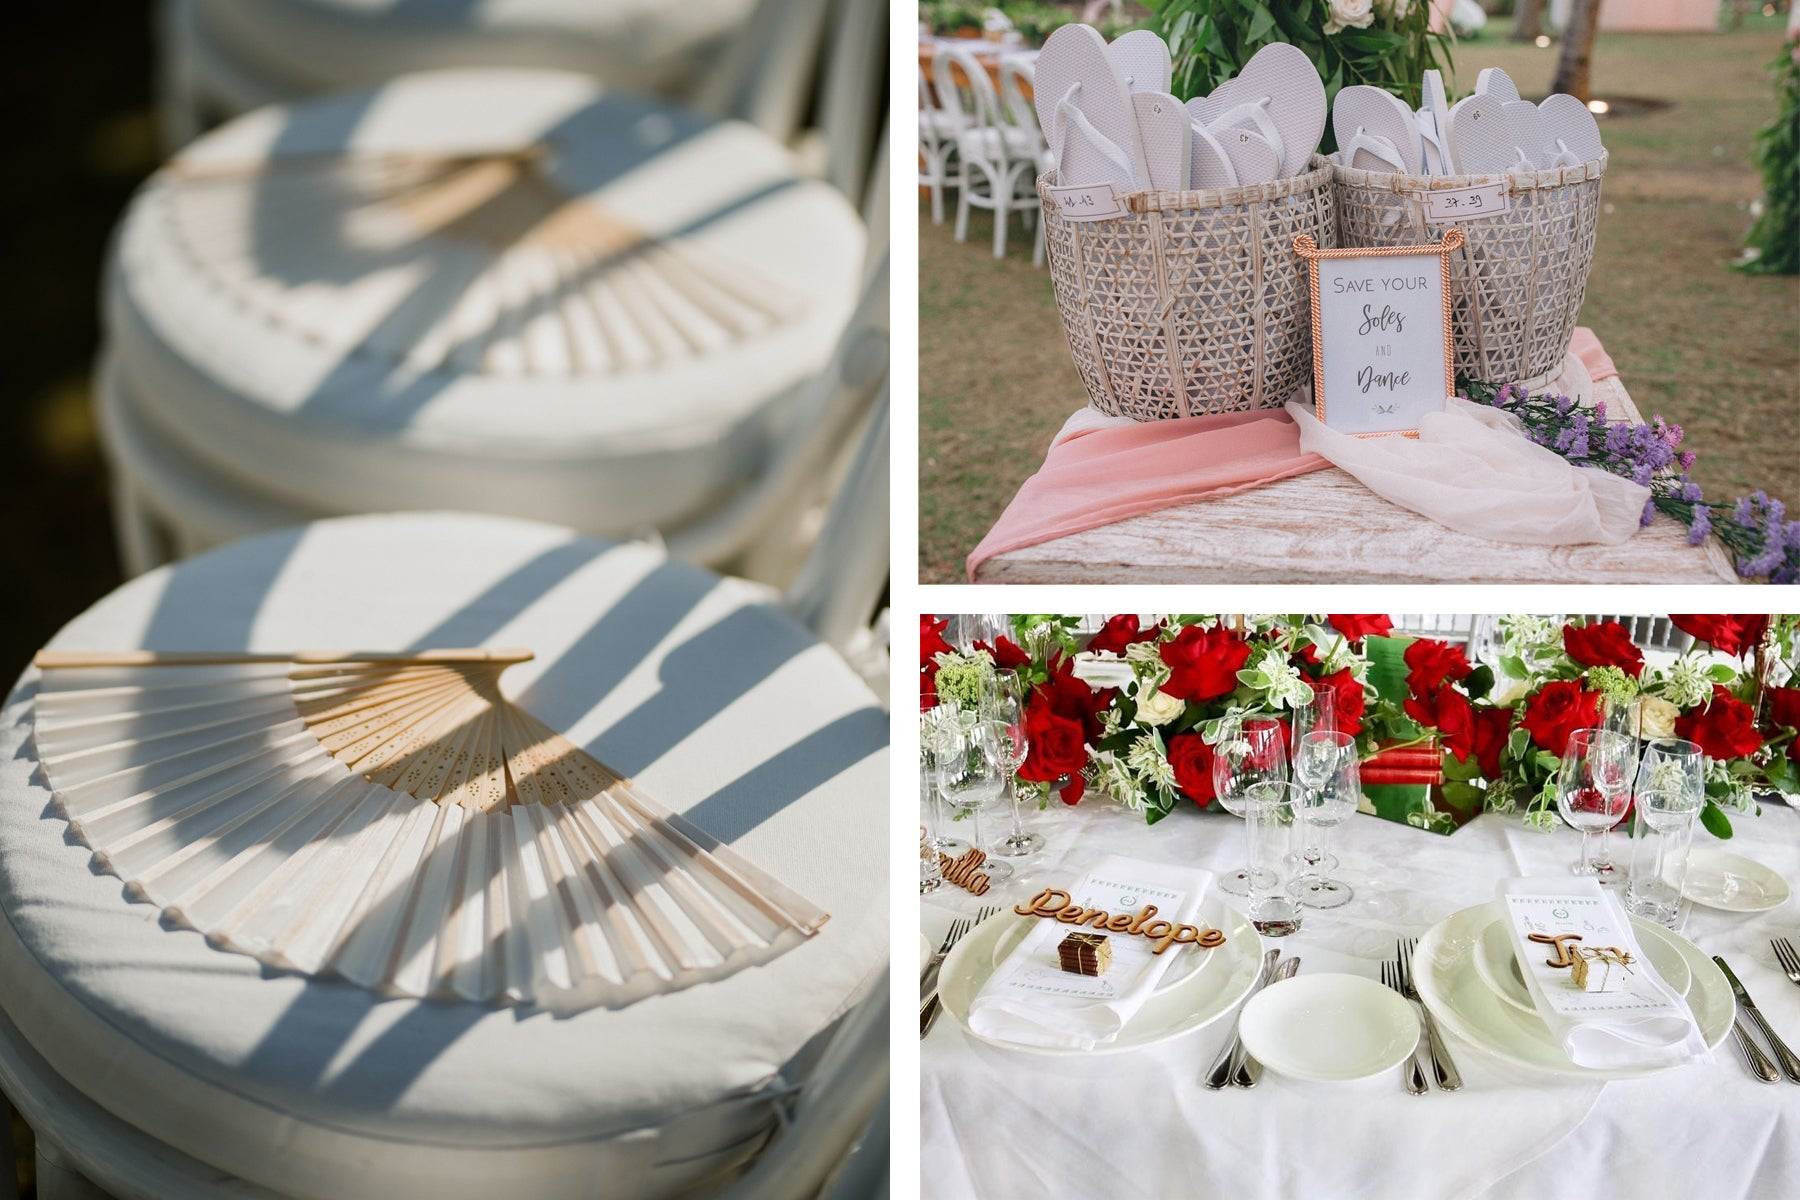 Eternal-bridal-small-wedding-ideas-persoanlised-gifts